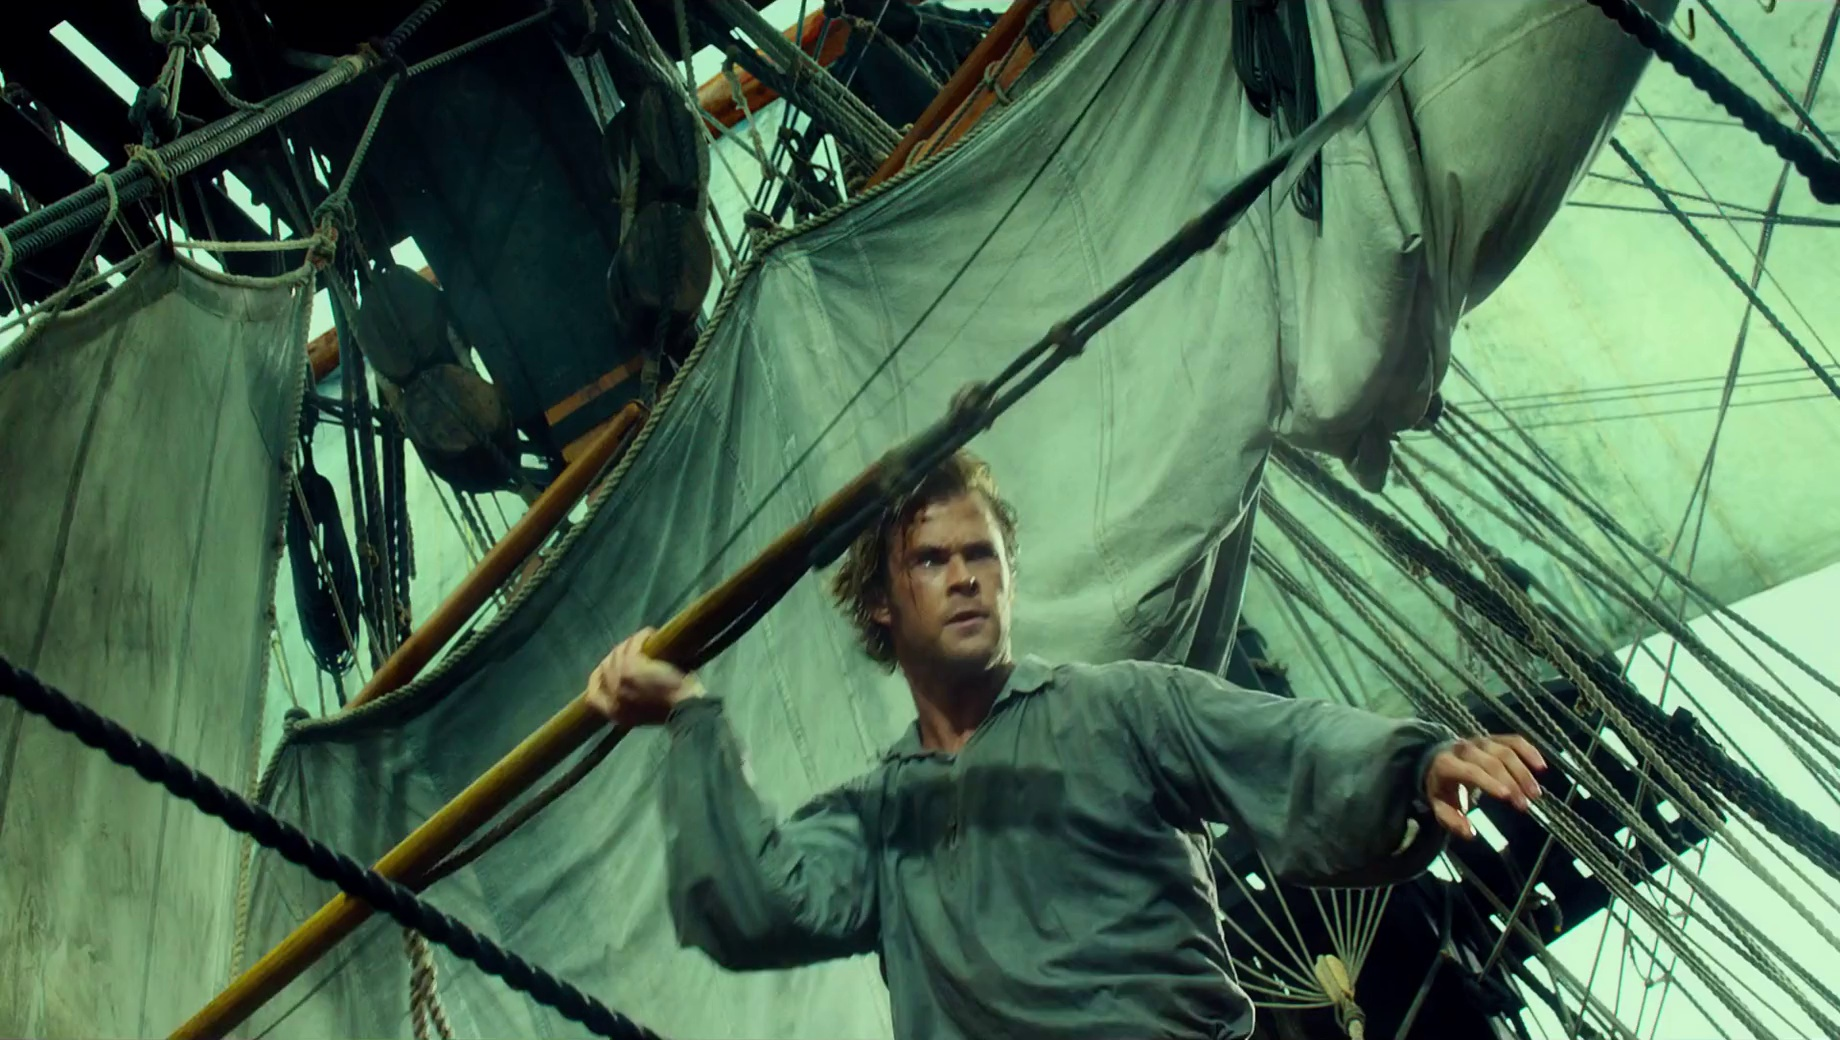 Chris Hemsworth's 'In The Heart of The Sea' has a final trailer, and it's intense